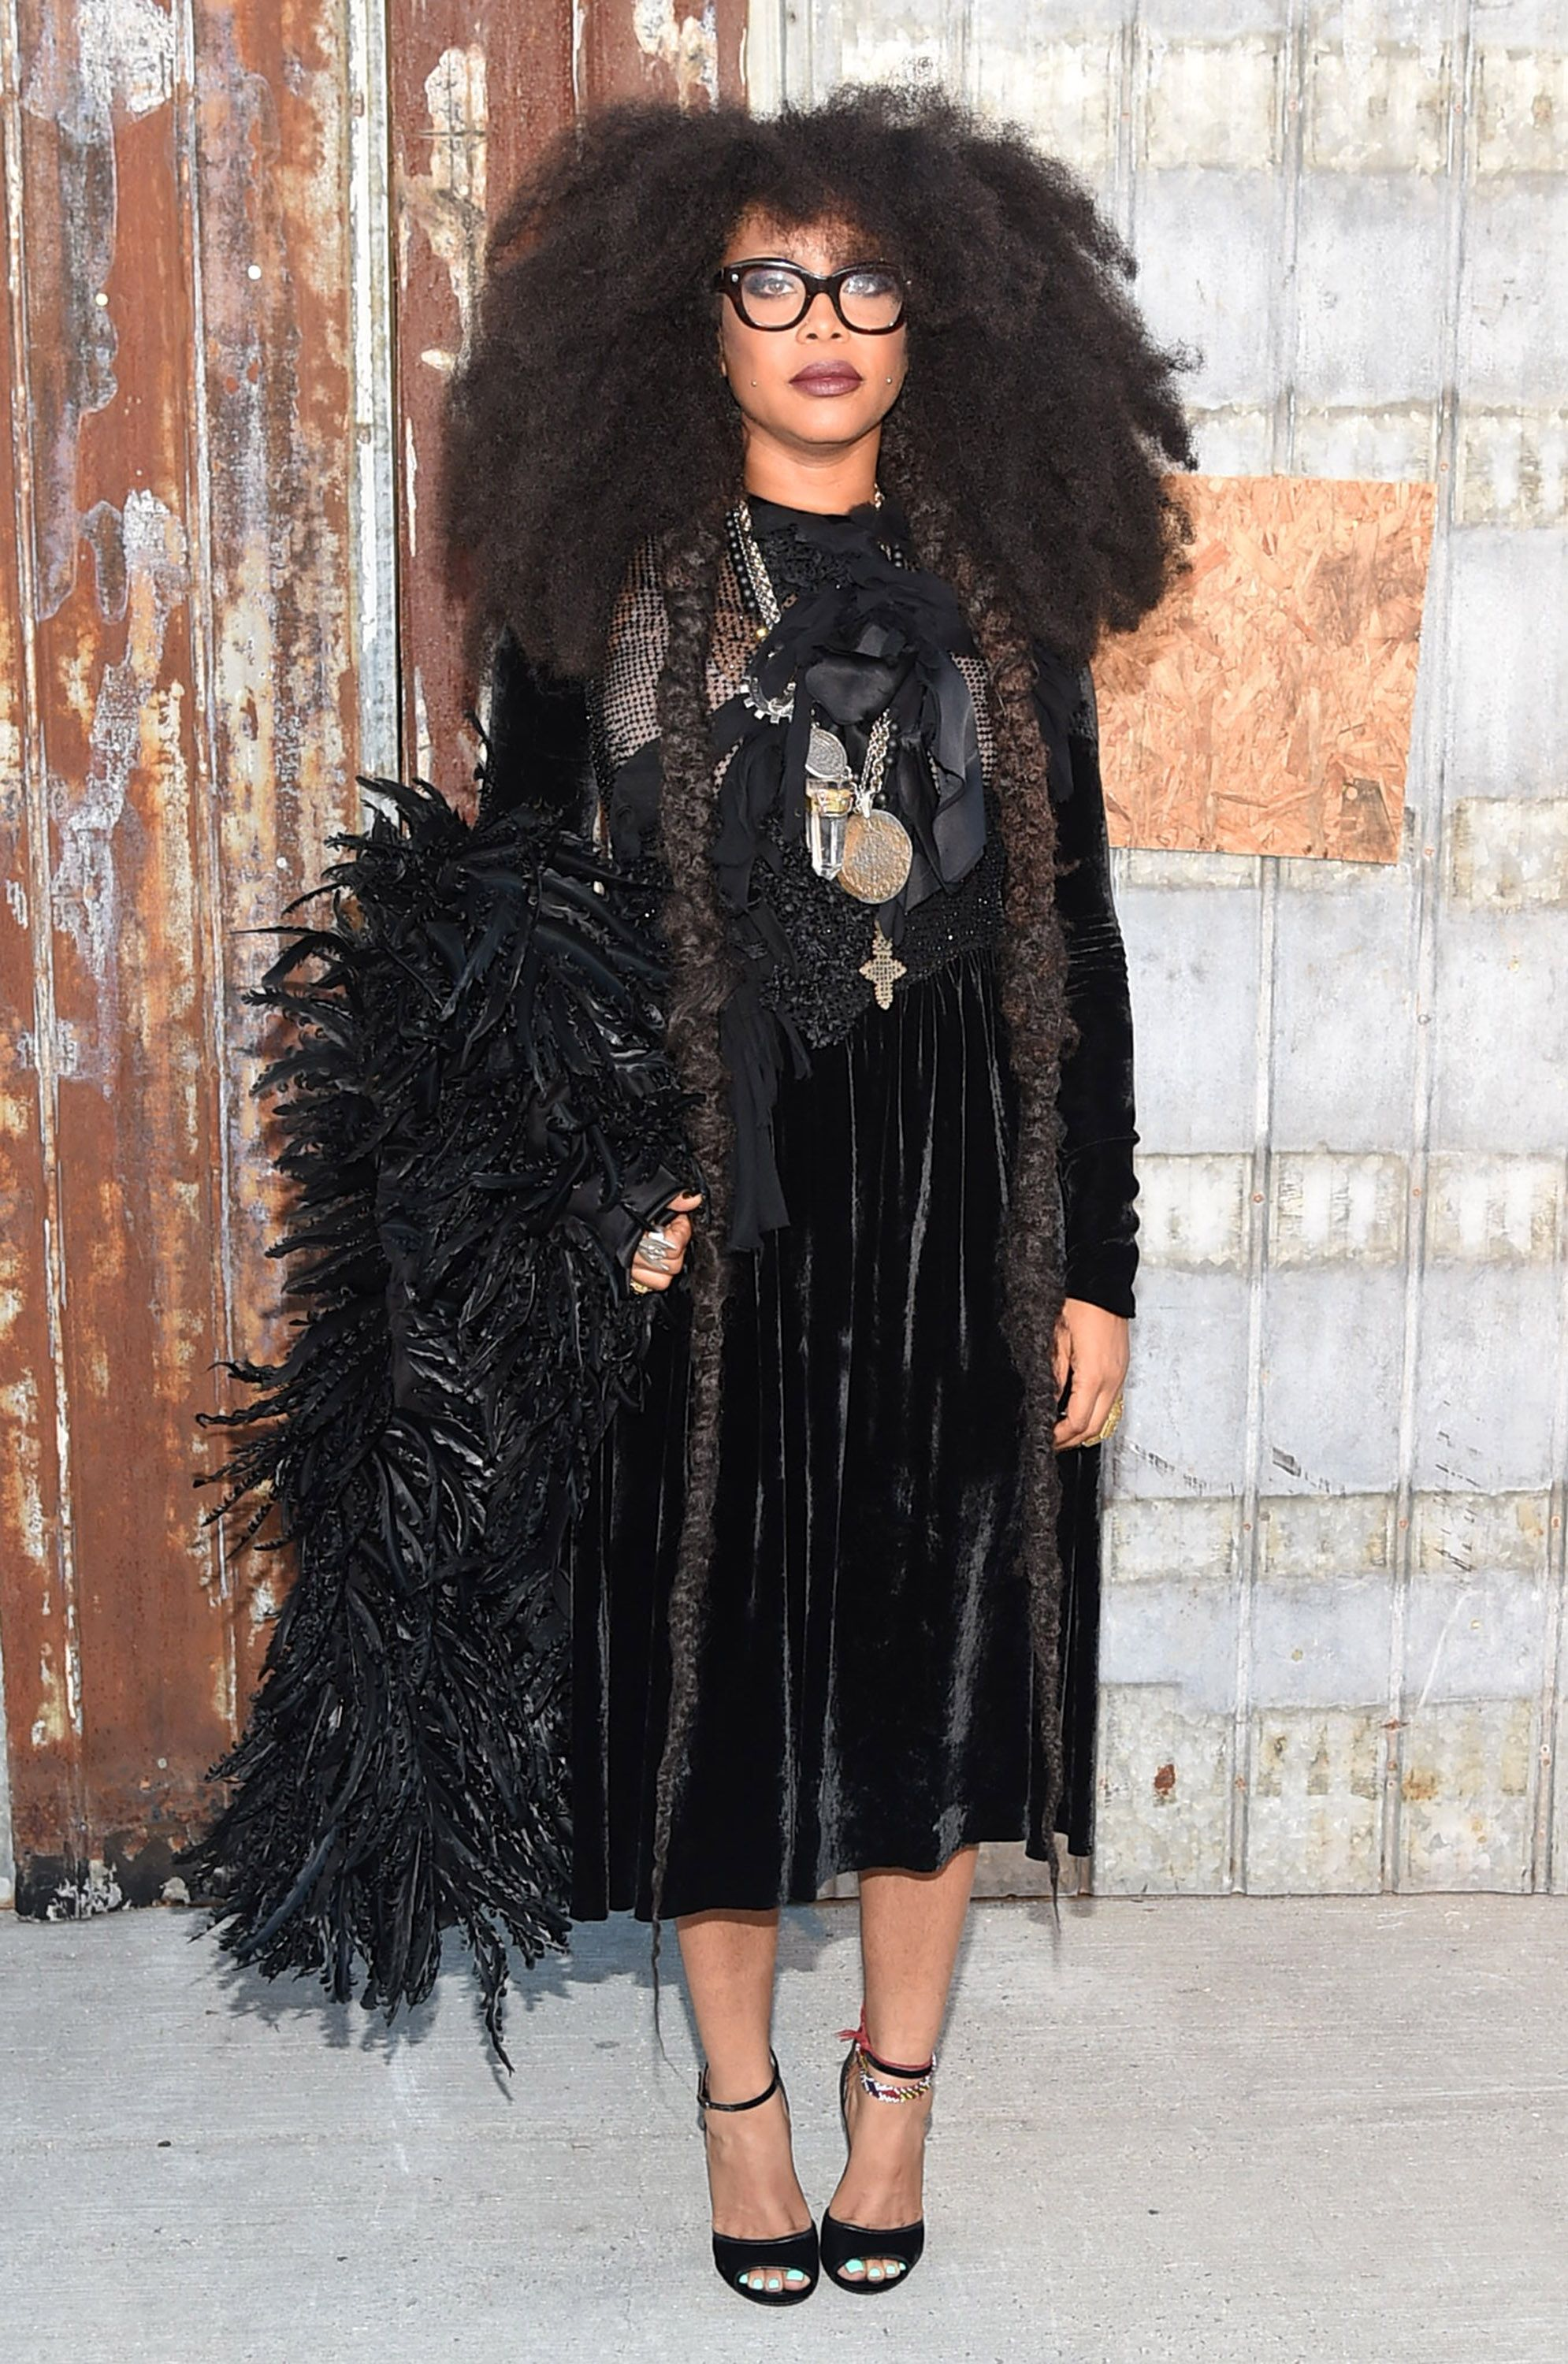 Erykah Badu at the Givenchy fashion show on September 11, 2015 in New York City.    Photo: Getty Images